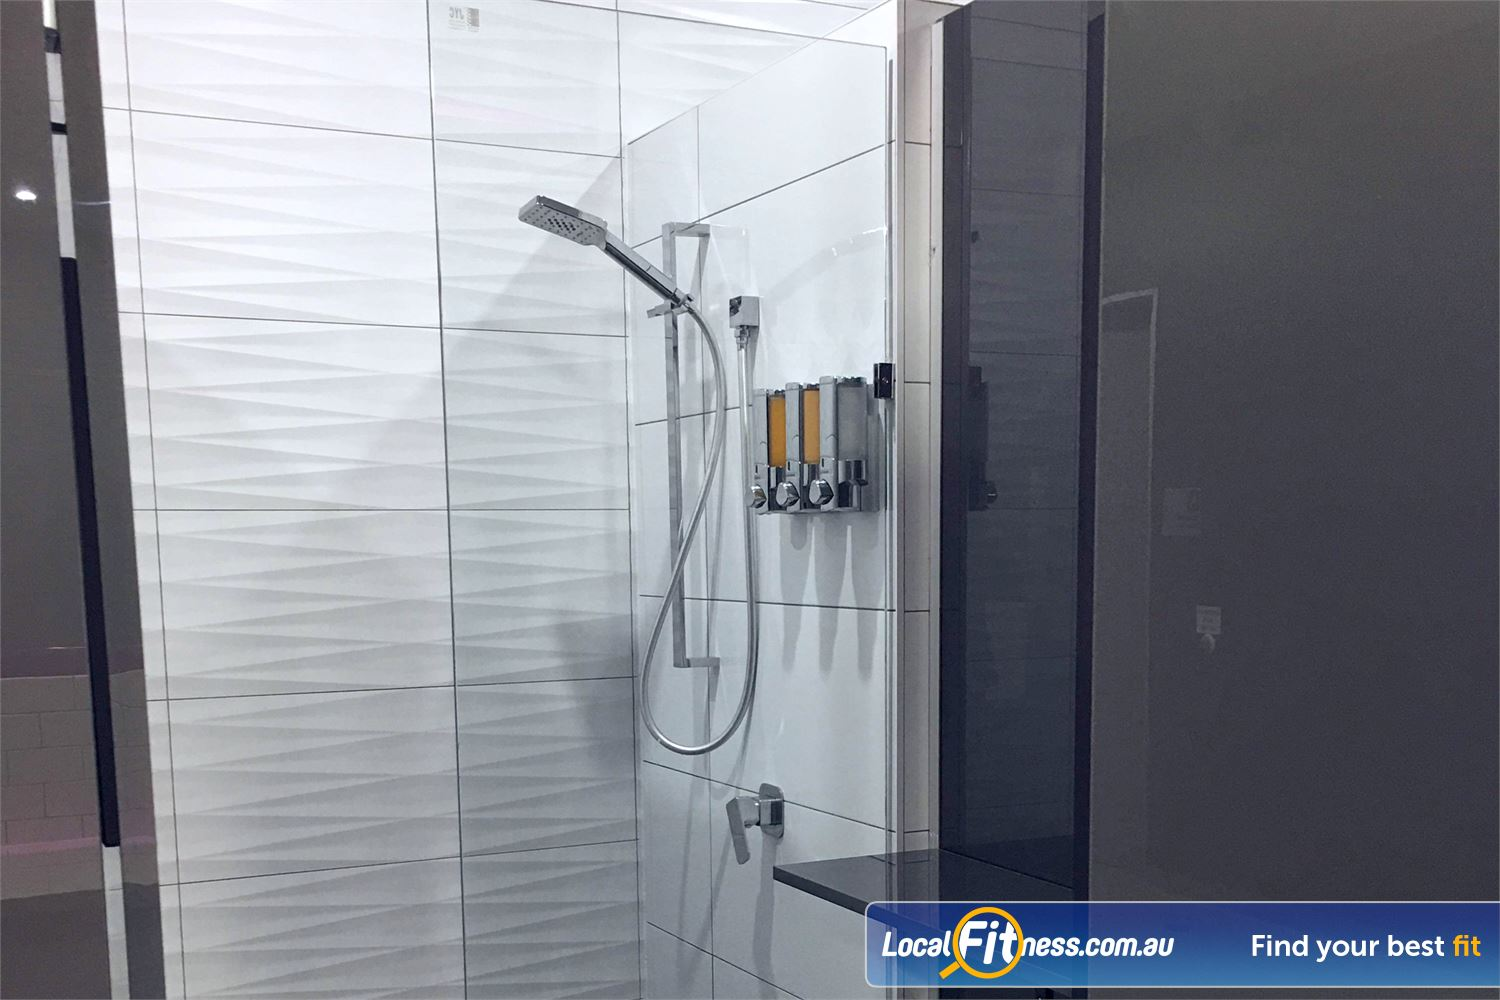 Fernwood Fitness Near Robina Town Centre Enjoy the water pressure in our sparkling showers.